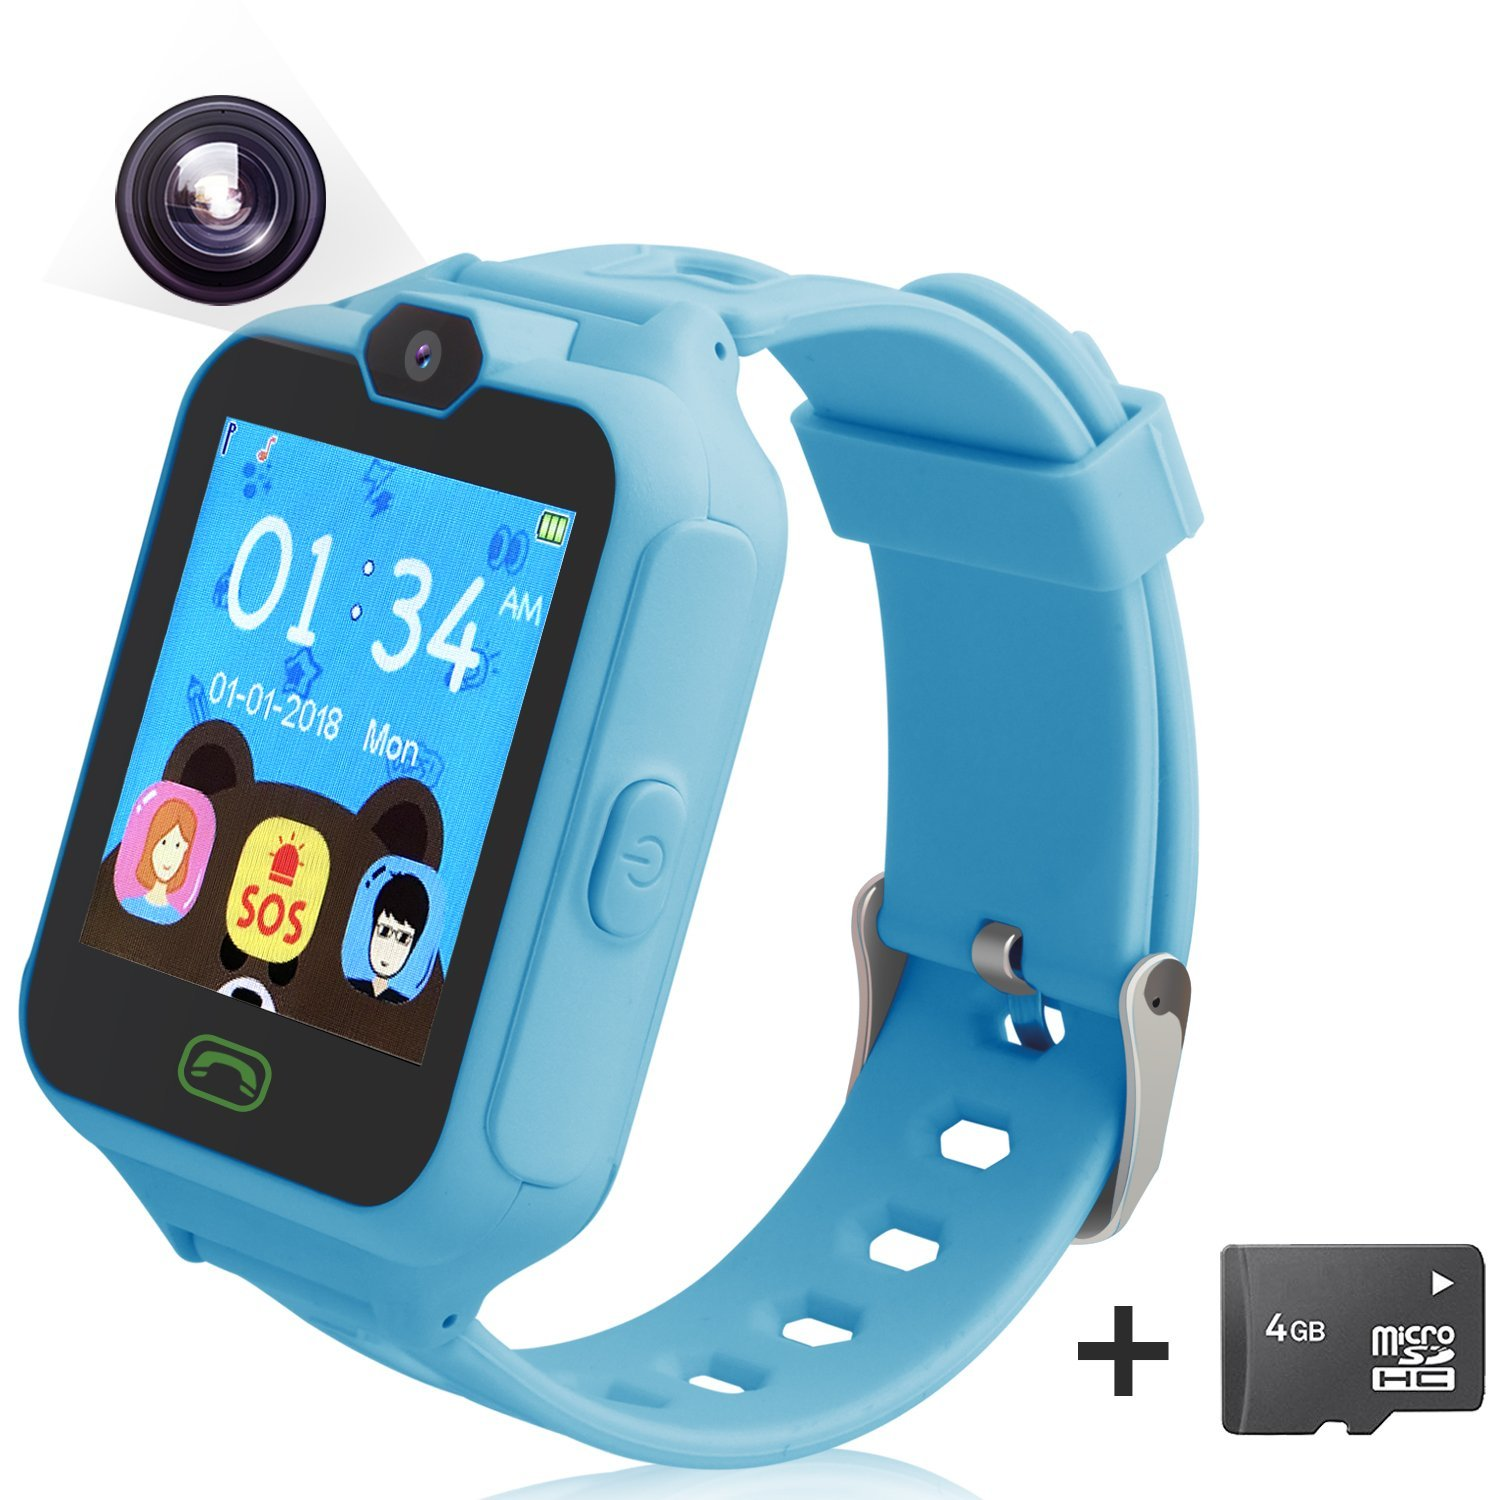 Smart Watch for Kids Unlocked Cell Phone Watch with [Camera] [Anti-lost SOS] [Alarm] [Games] Smart Watch Compatible for IOS iPhone and Android Includes 4G Memory Card(Blue)